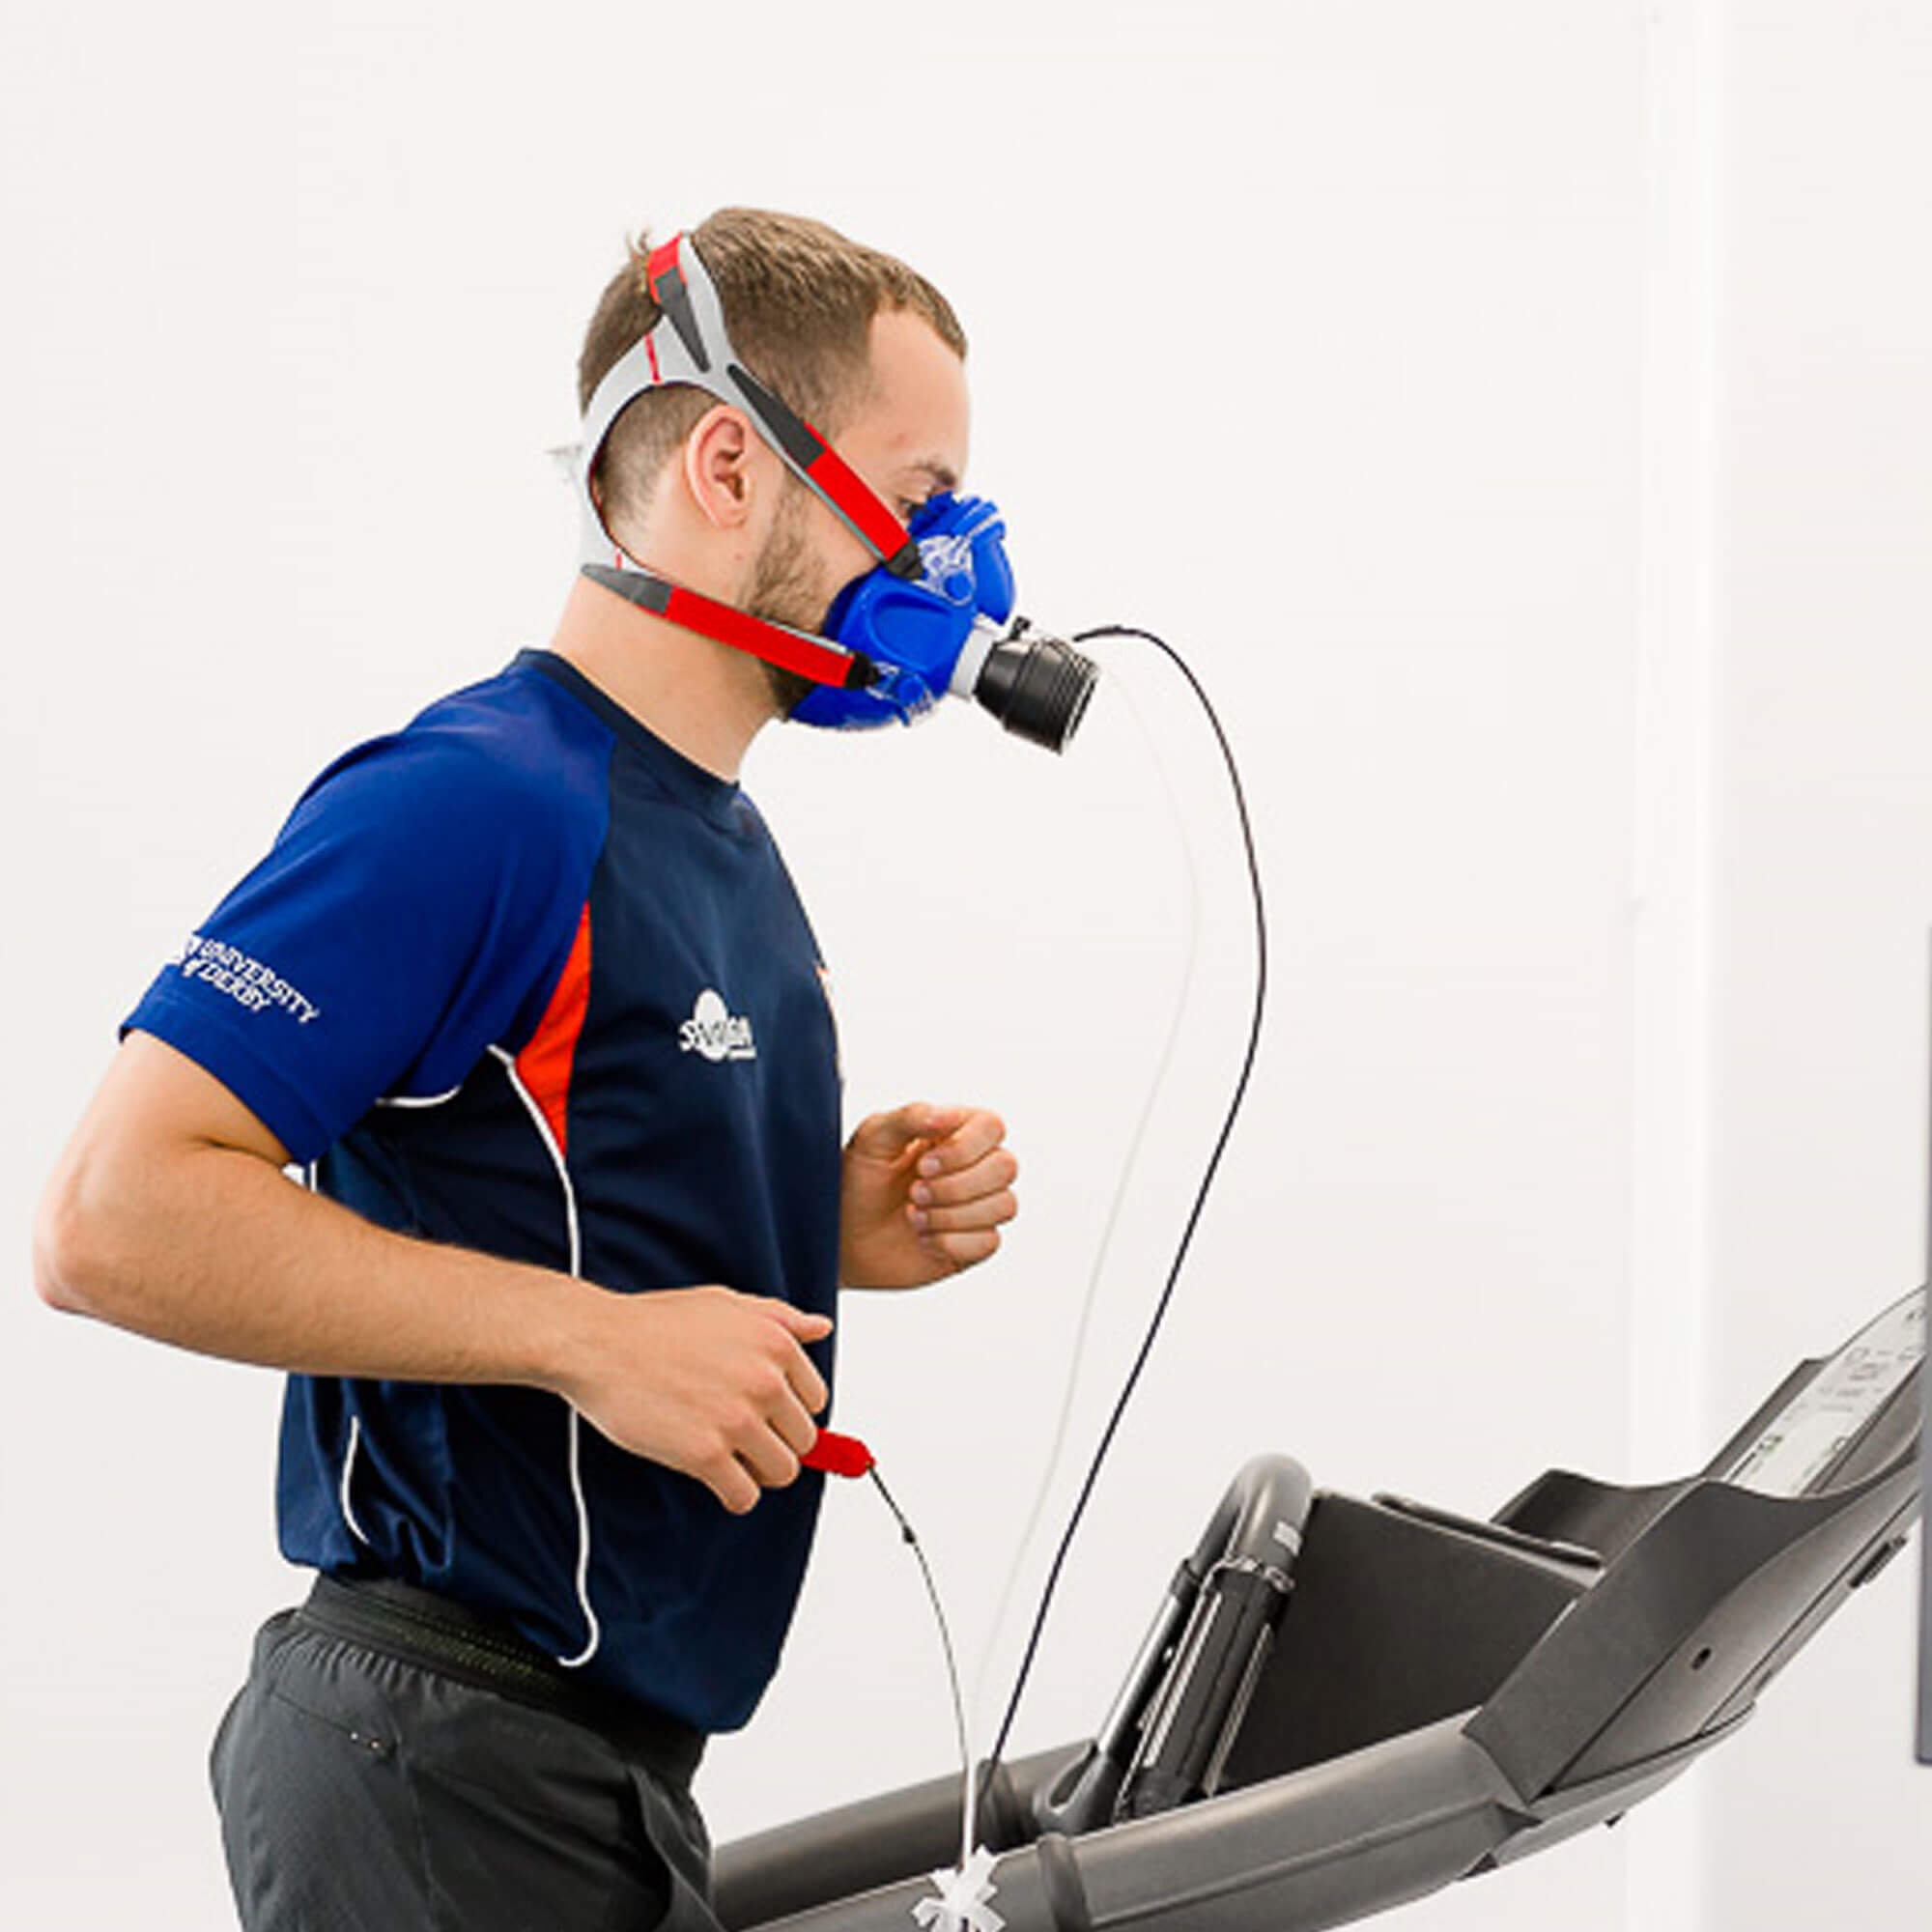 A man running on the treadmill, with monitoring gear on